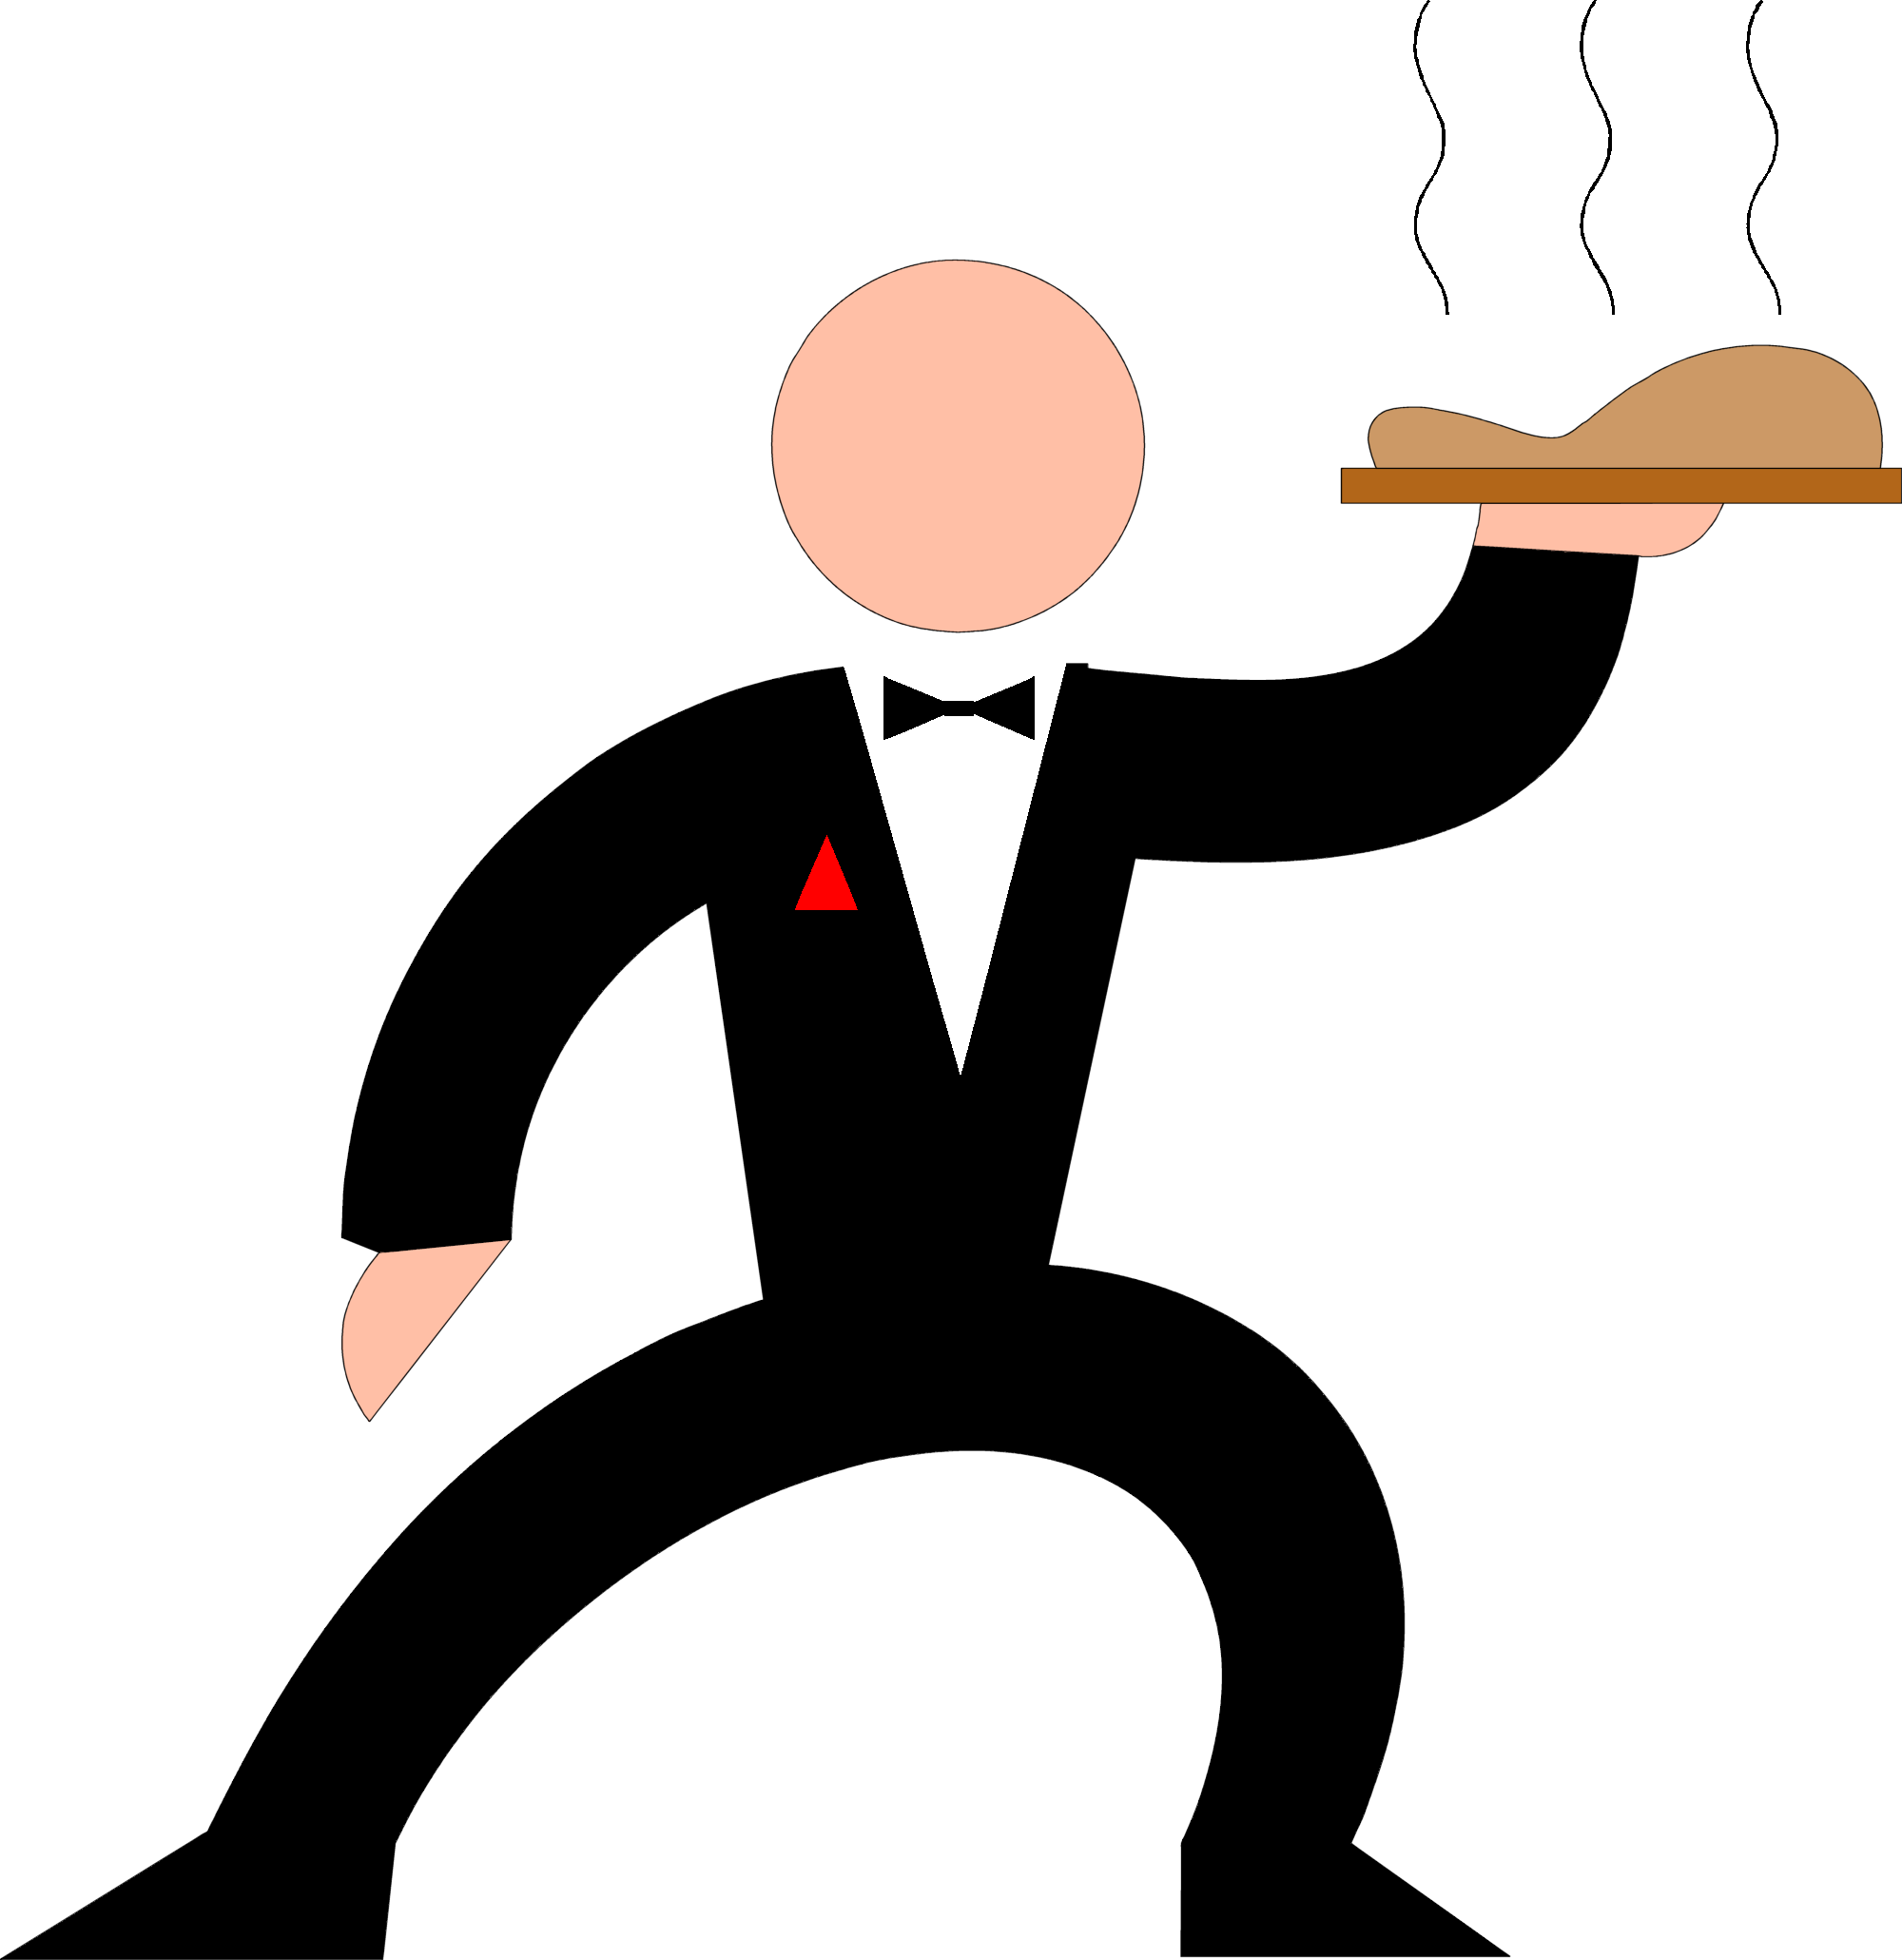 Waiter clipart casual dining. Daily news who are